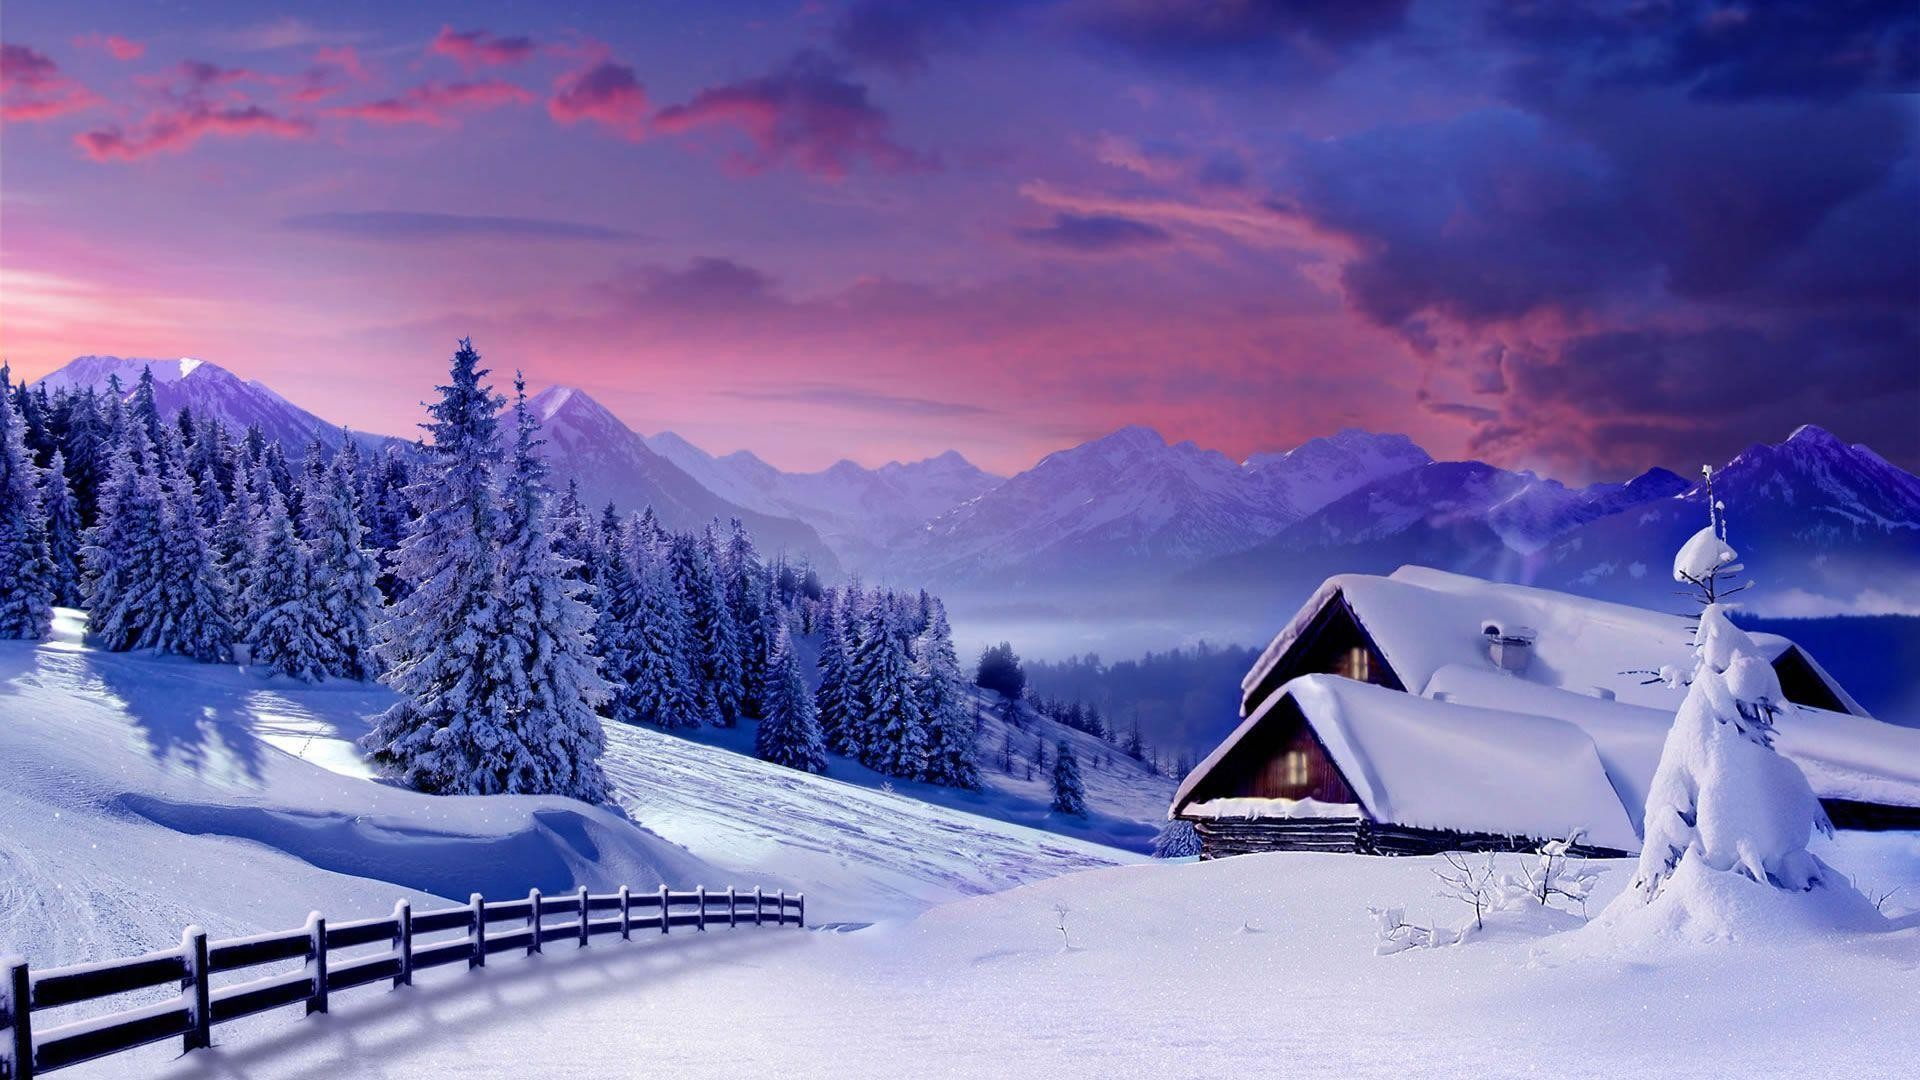 Winter Nature Wallpapers Hd Wallpaper Collections